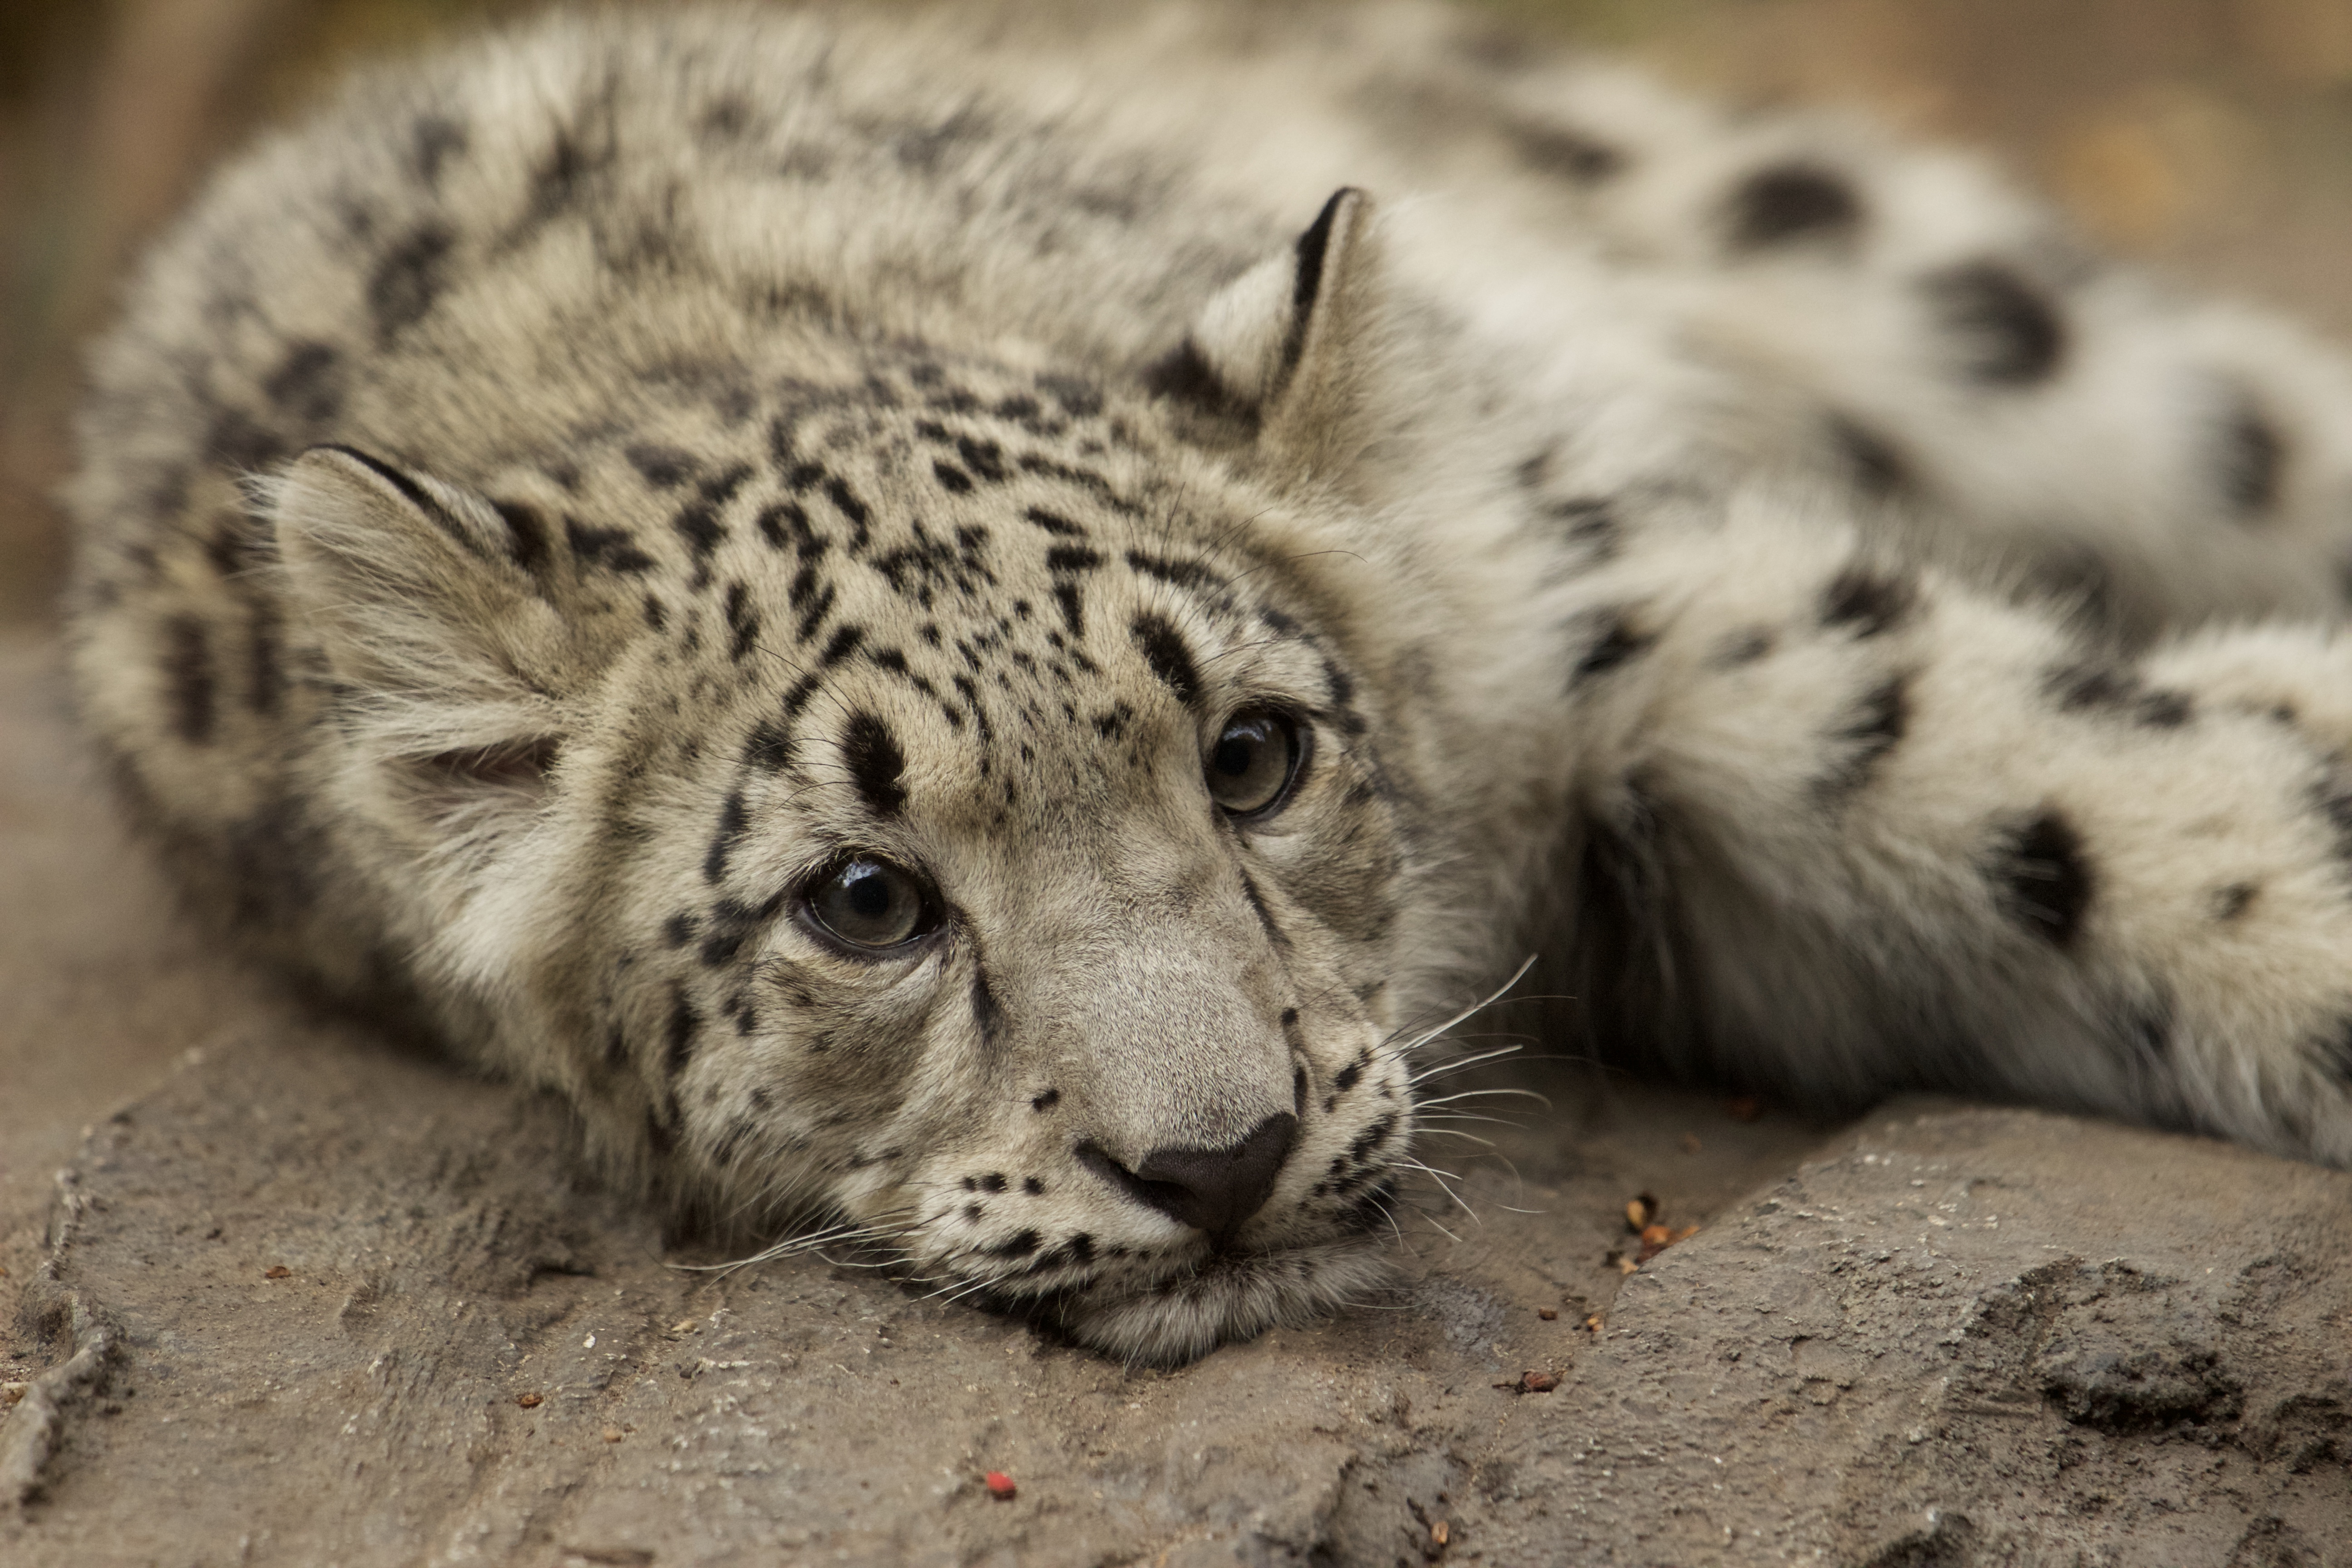 A snow leopard cub rests at New York City's Central Park Zoo.